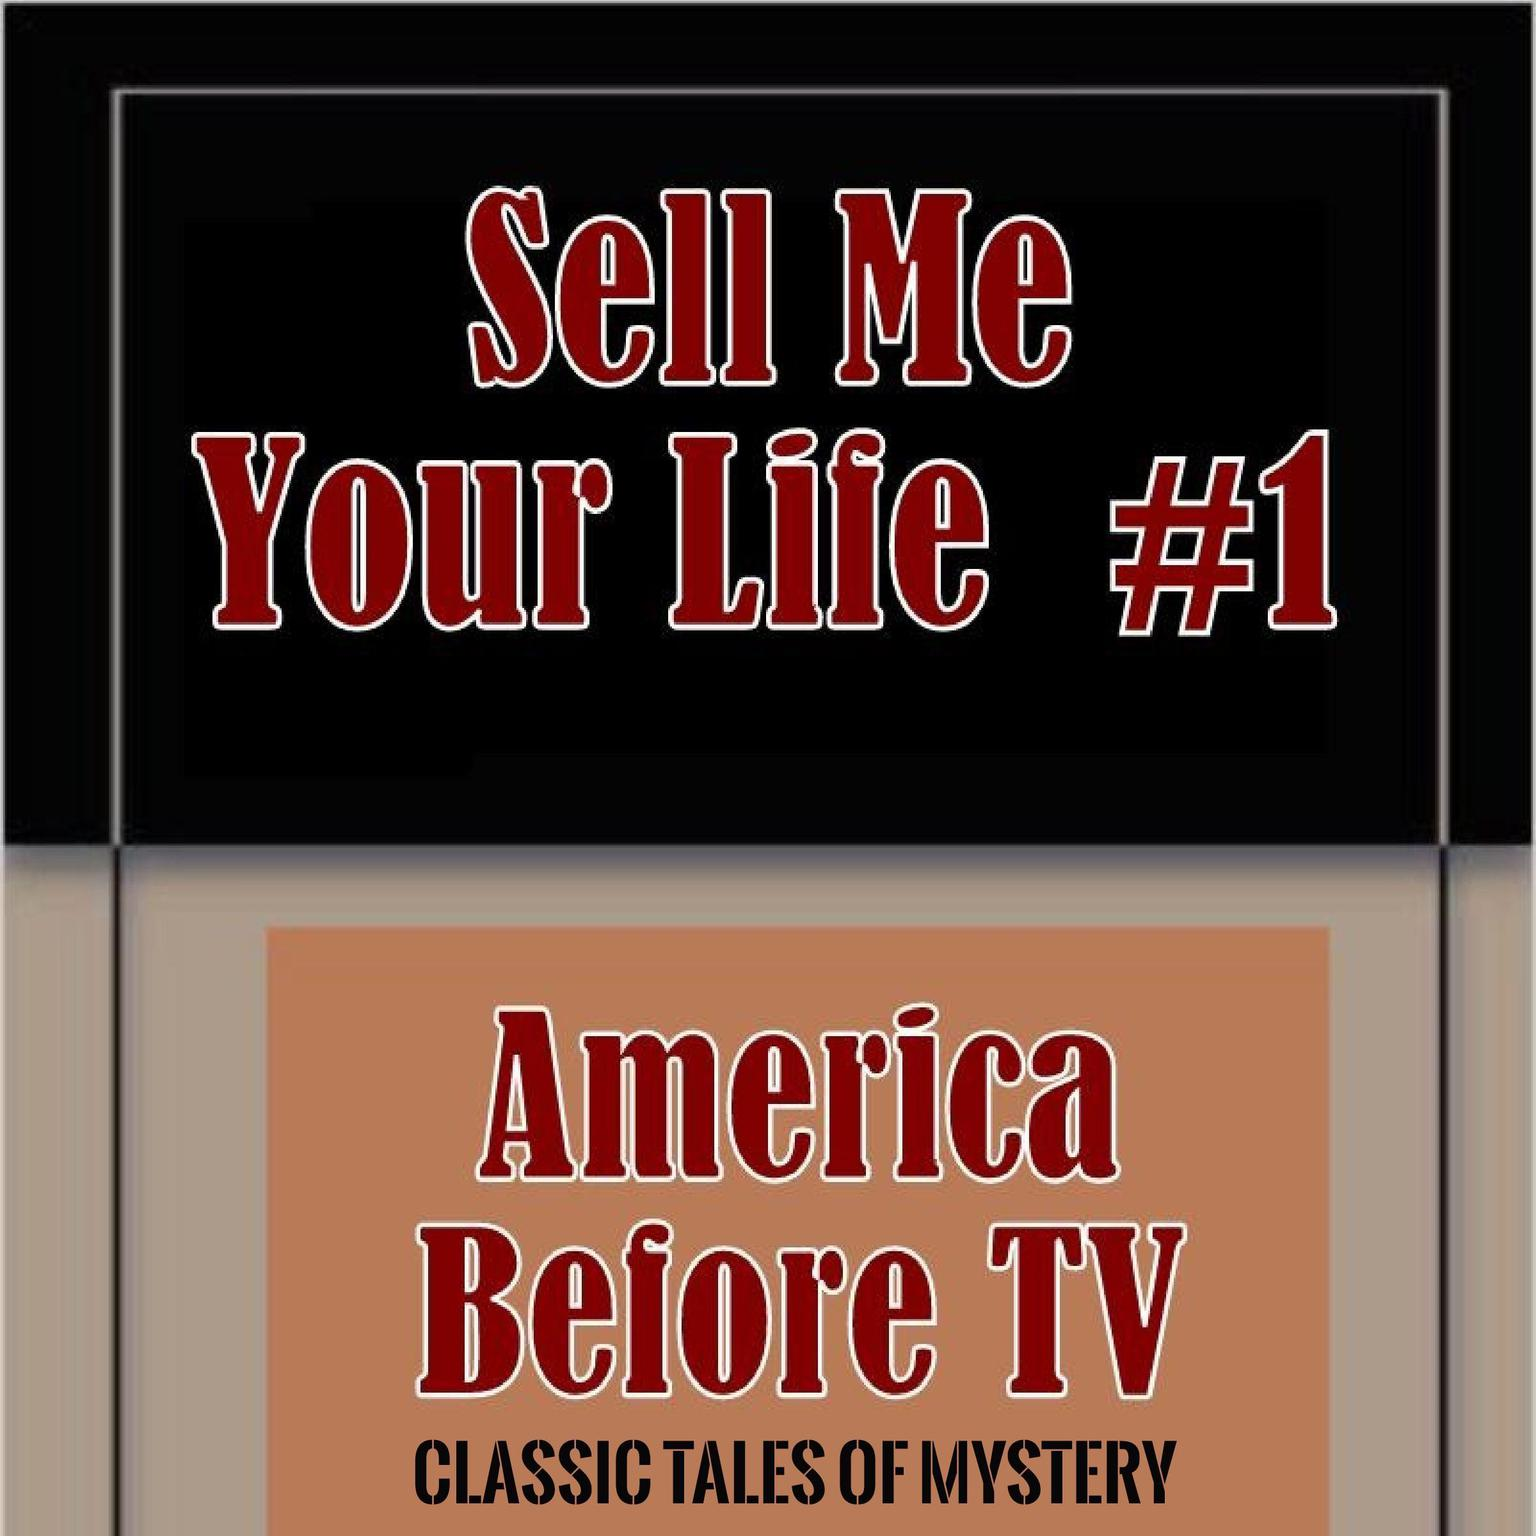 Printable America Before TV - Sell Me Your Life  #1 Audiobook Cover Art